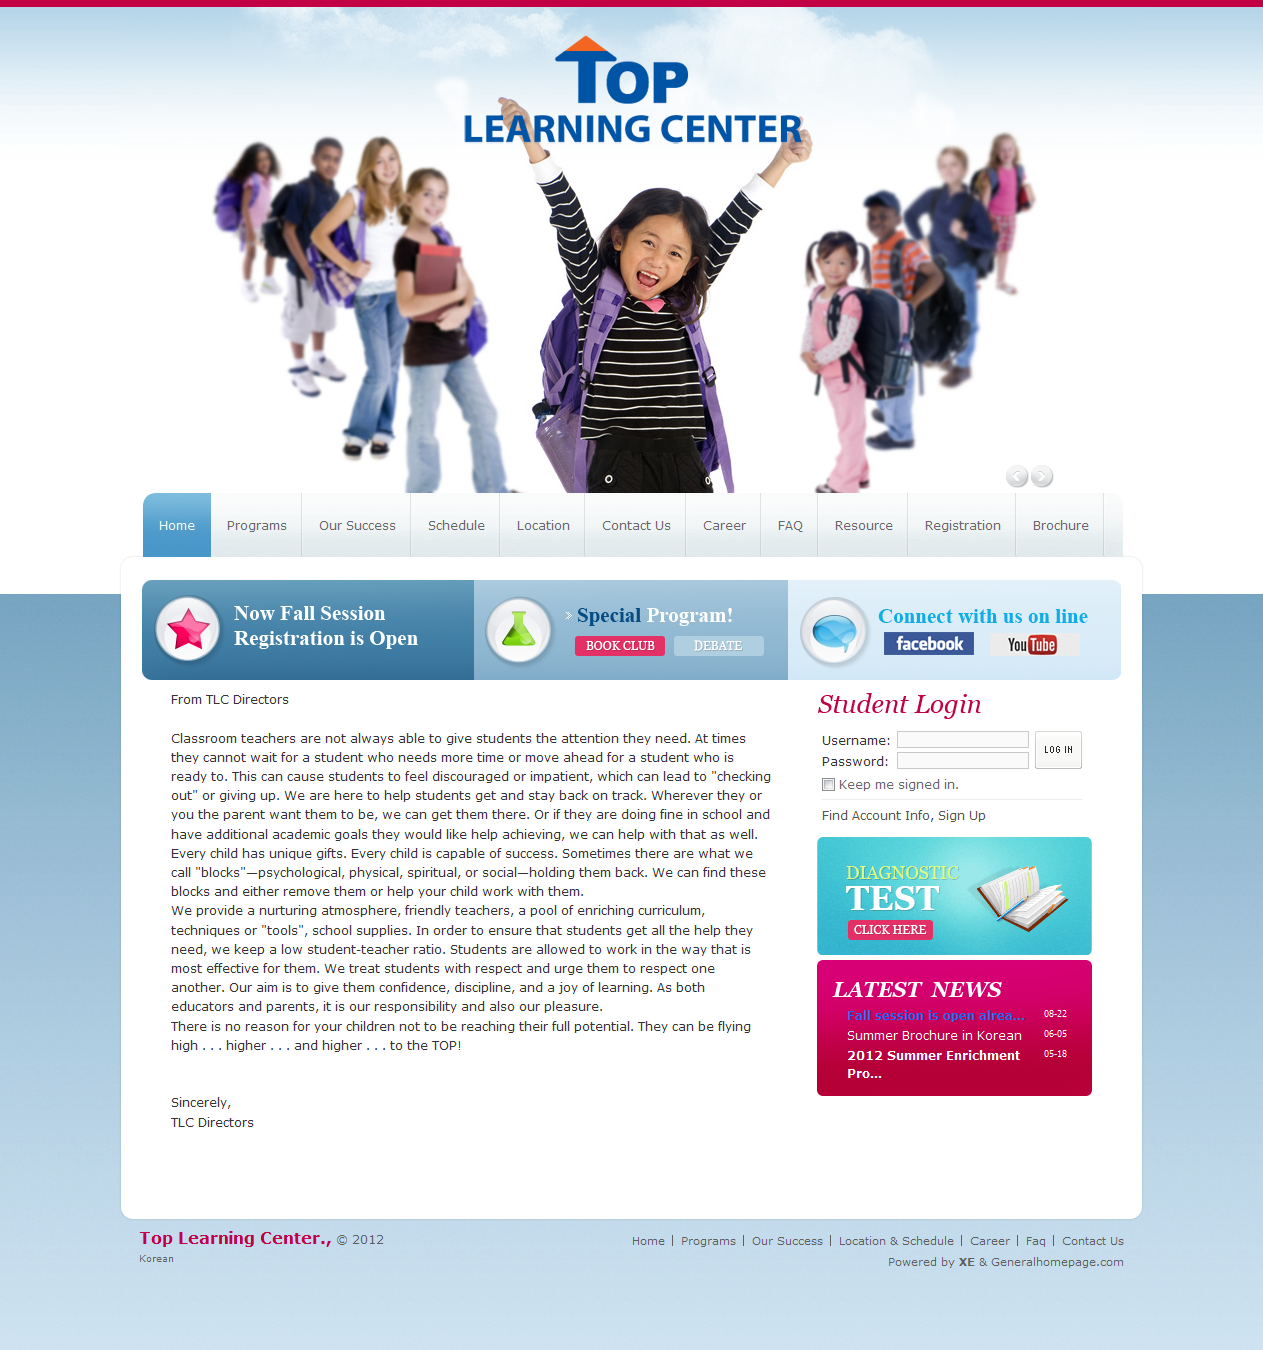 FireShot Screen Capture #328 - 'Top Learning Center' - toplearningcenter_com.png